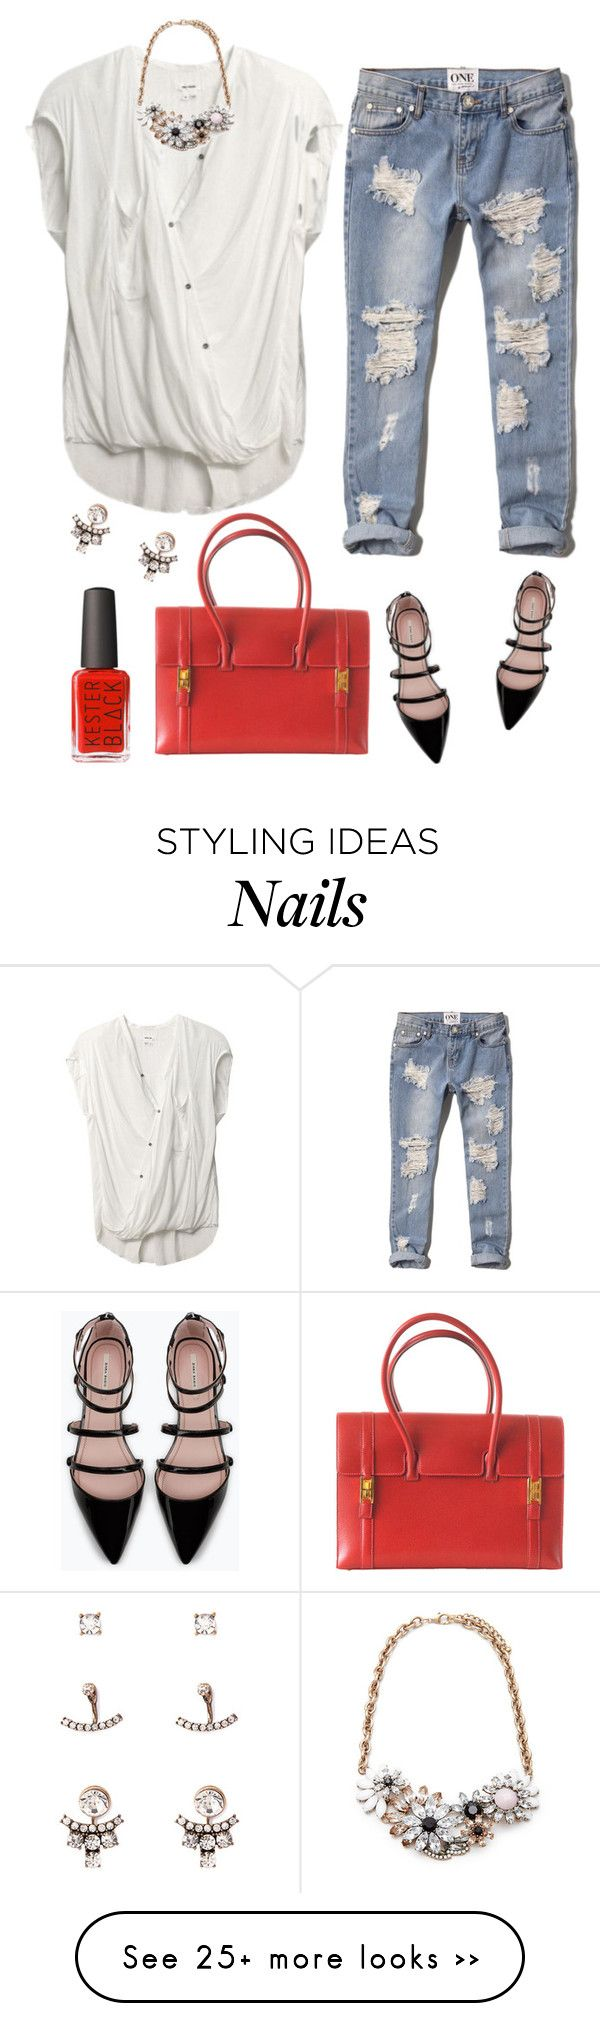 """""""Red Bag"""" by mk-style on Polyvore featuring Forever 21, Abercrombie & Fitch, Helmut Lang, Zara and Hermès"""